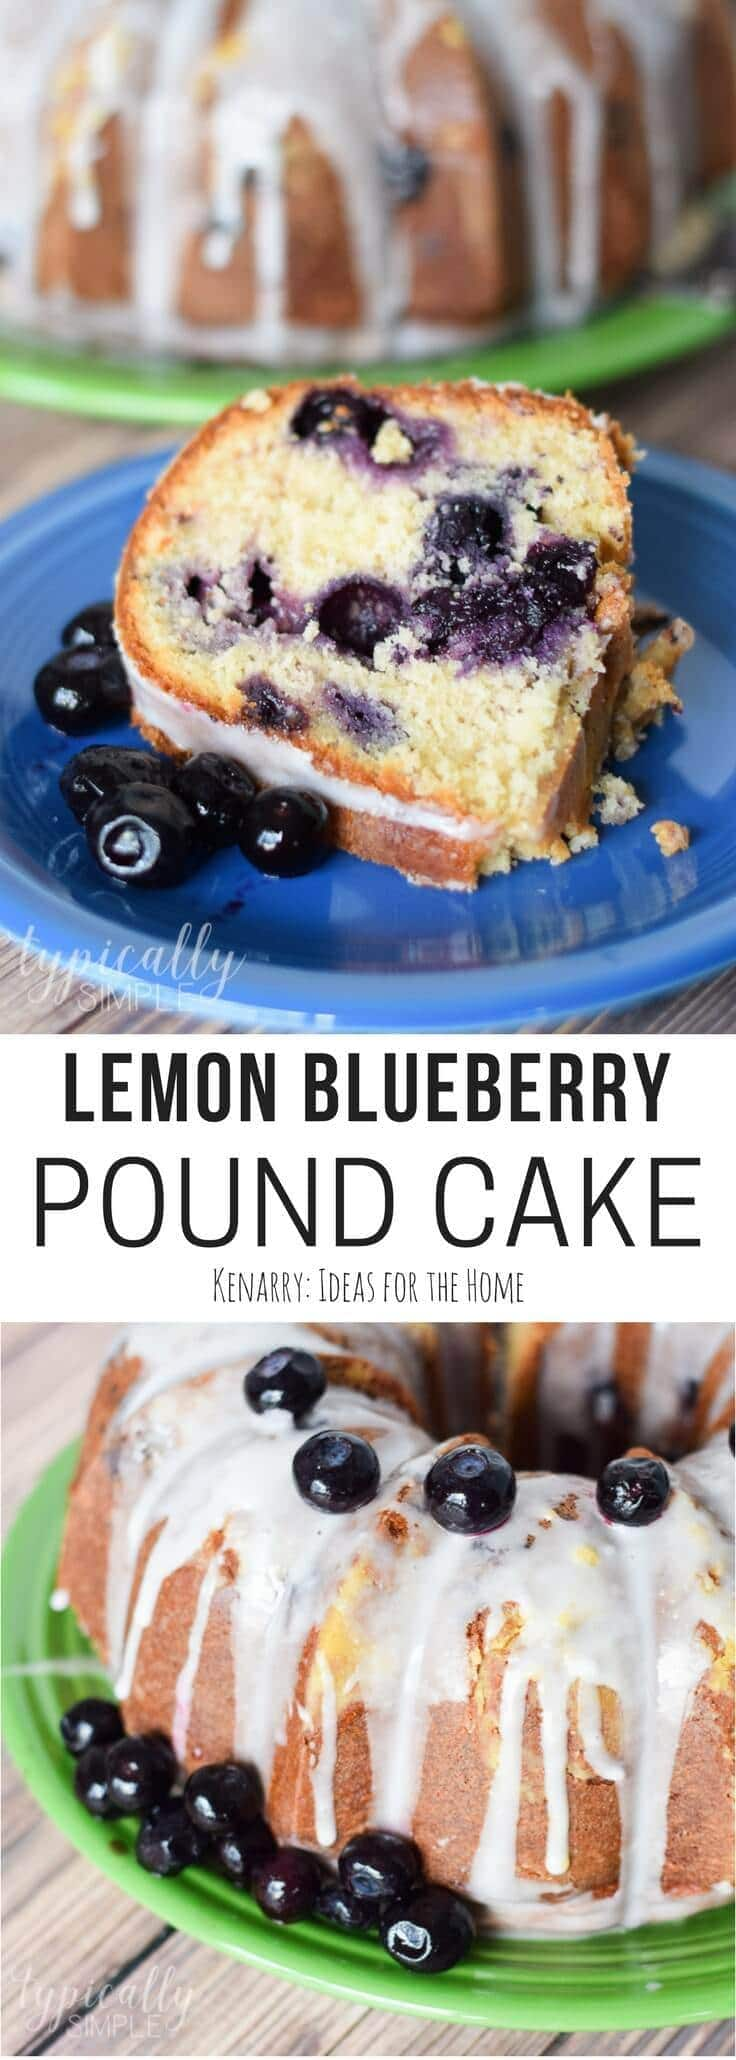 slice of lemon blueberry pound cake on a plate with a bundt cake in the background